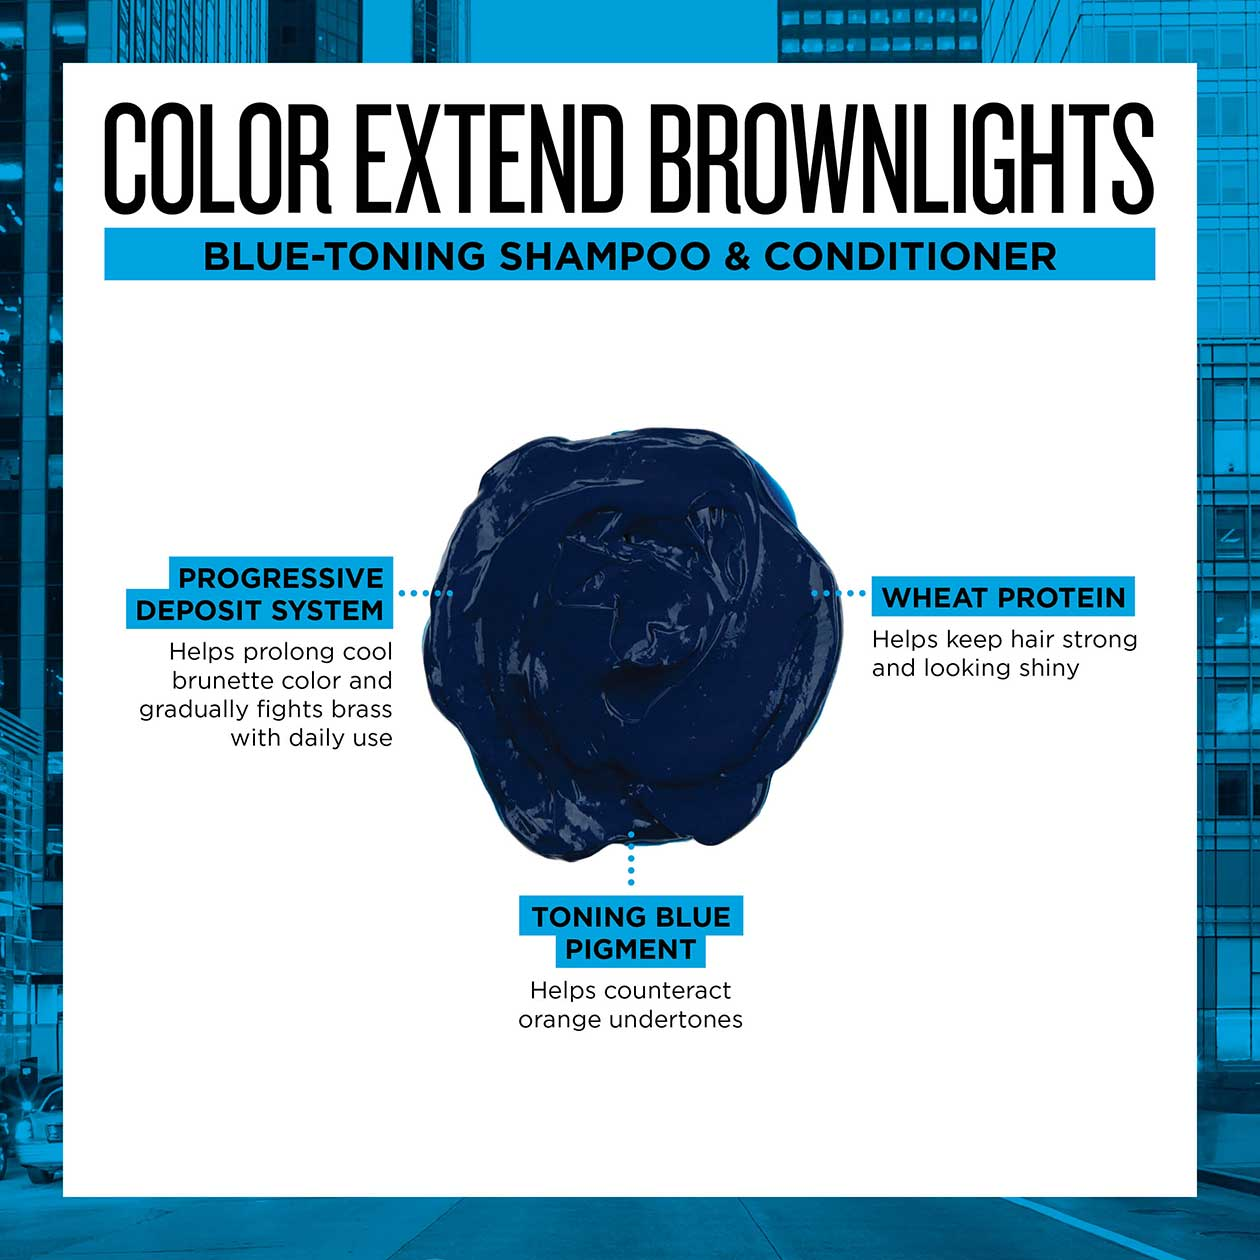 Redken-2019-Color-Extend-Brownlights-Infographic-1x1